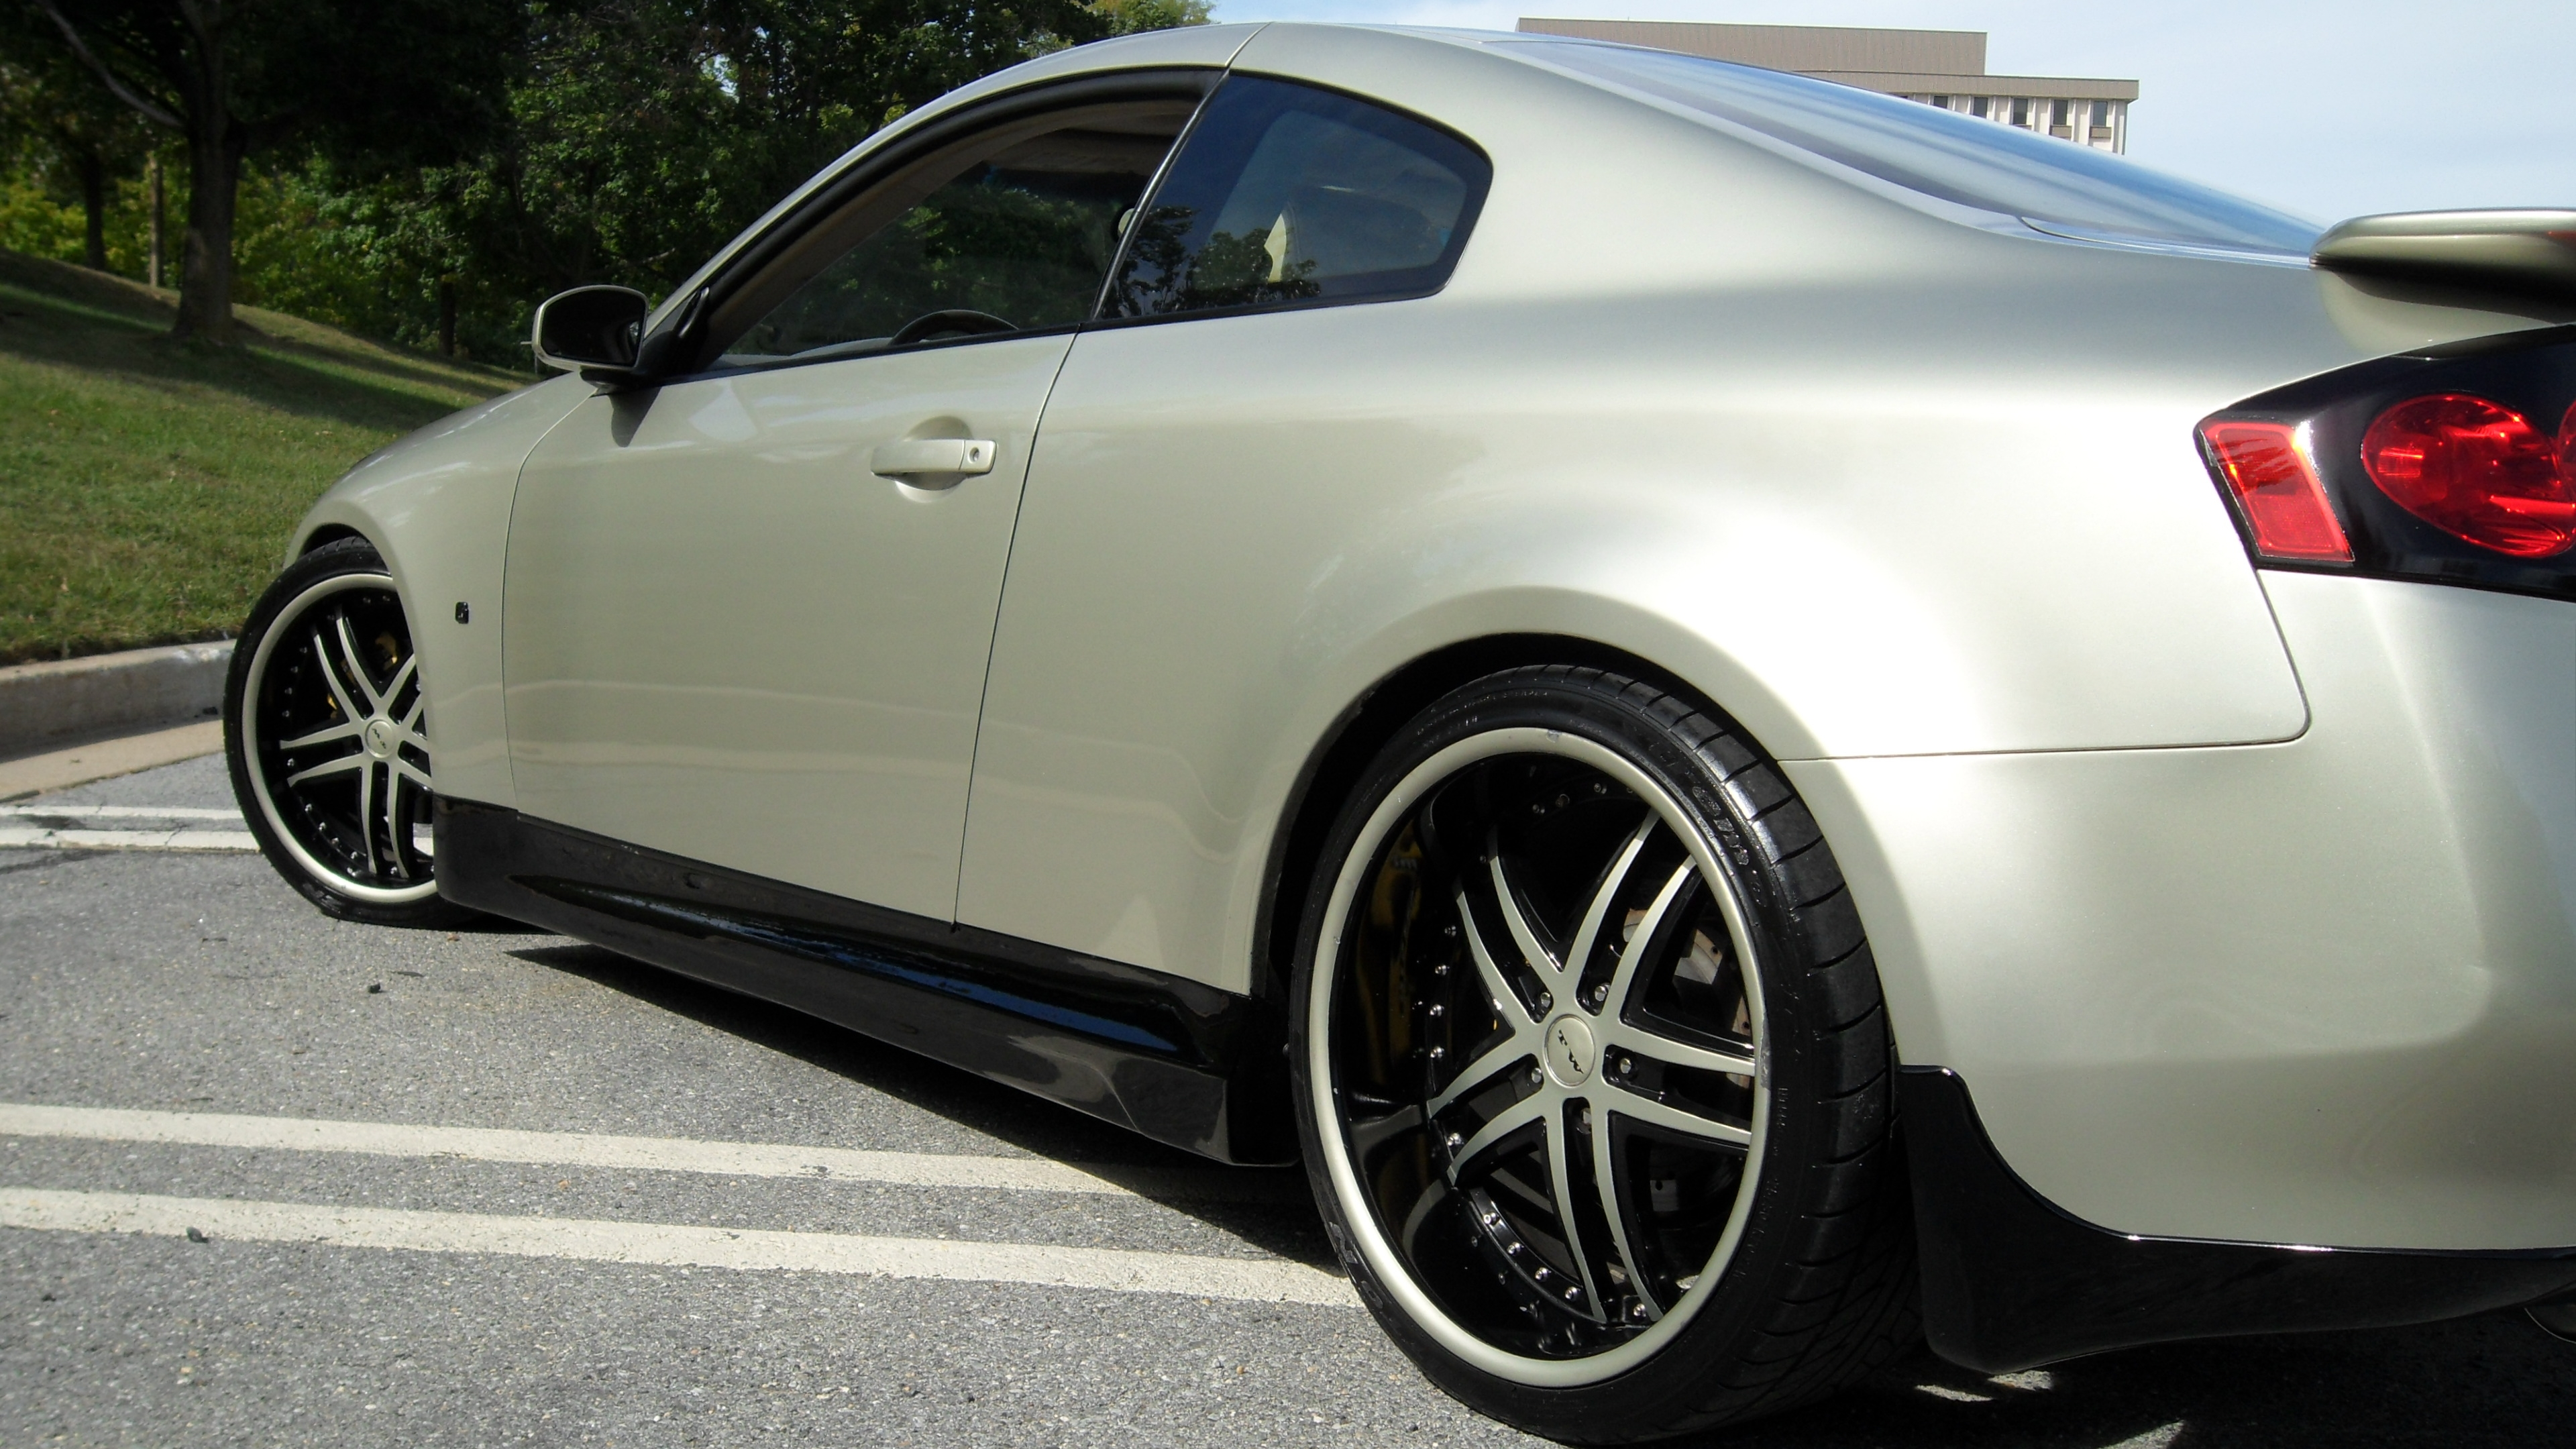 nitrorc75 39 s 2005 infiniti g g35 coupe 2d in baltimore md. Black Bedroom Furniture Sets. Home Design Ideas